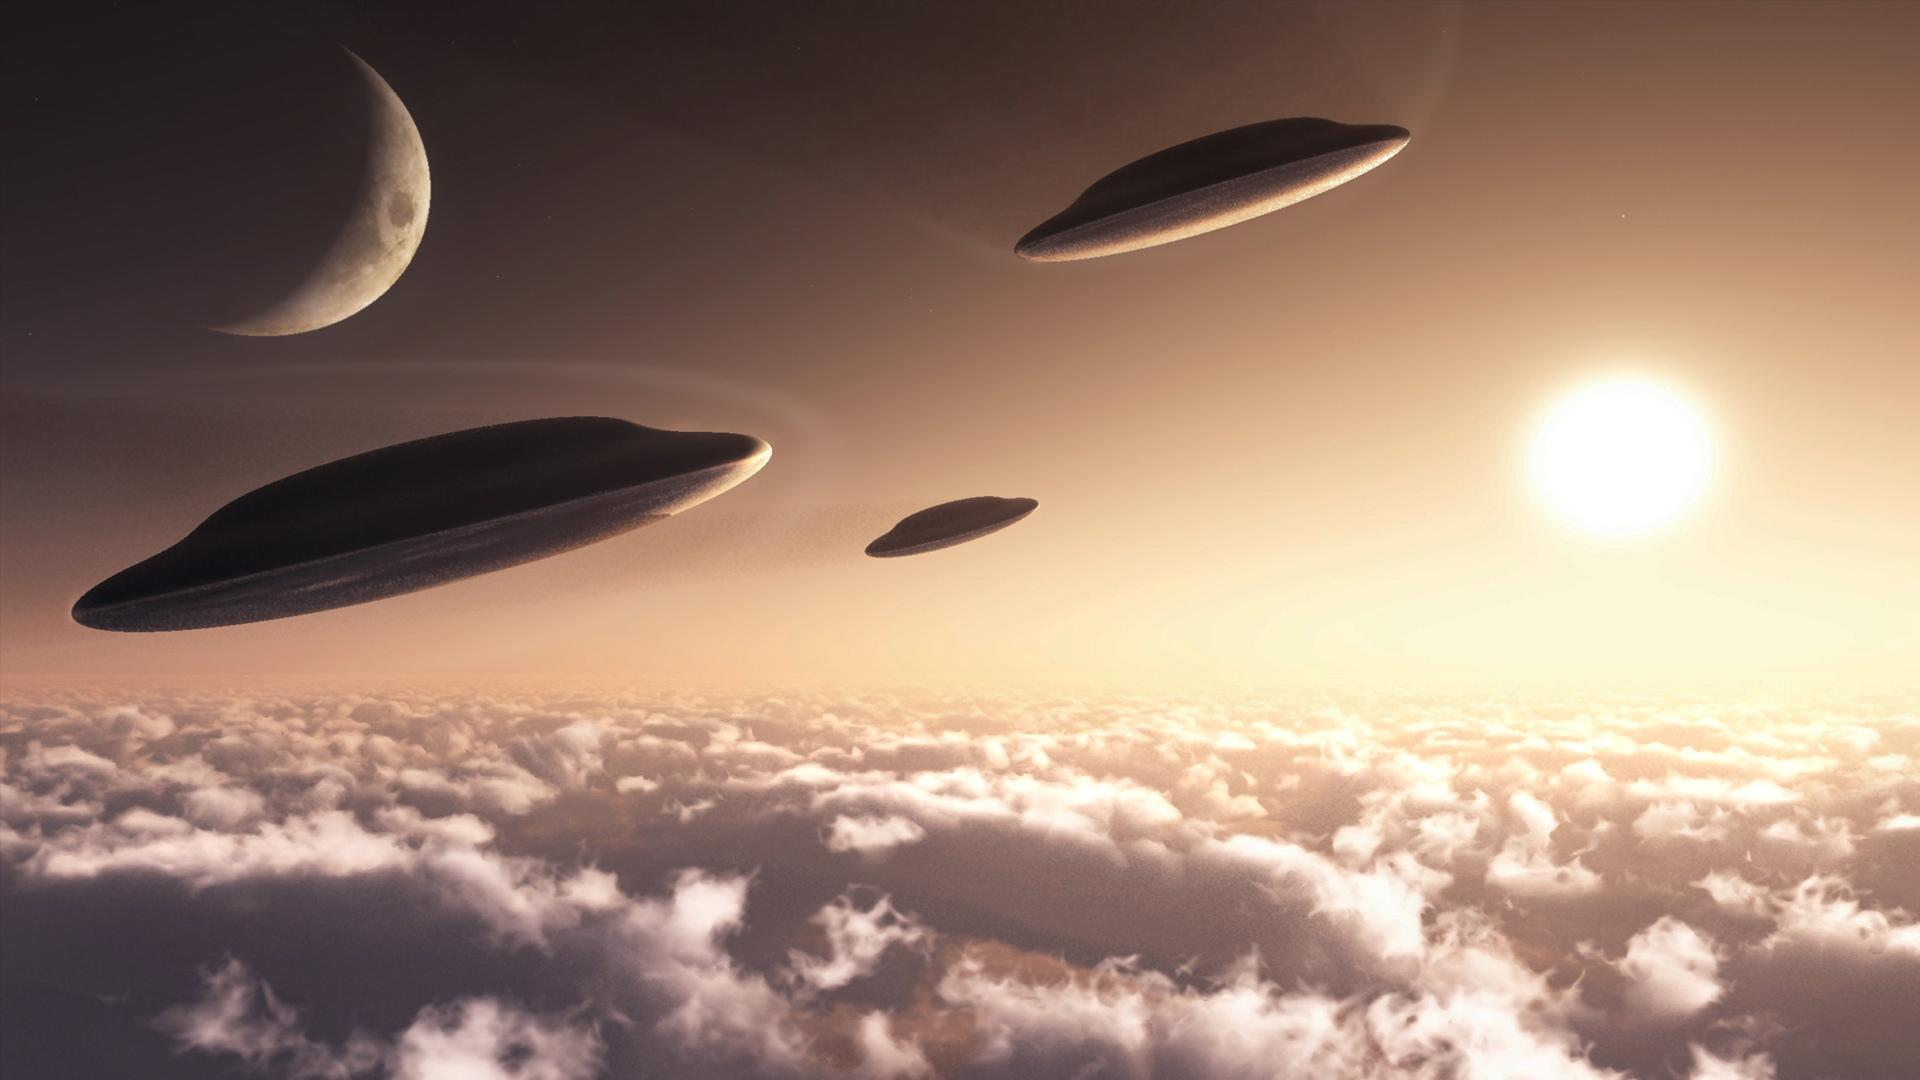 Ufos Wallpapers